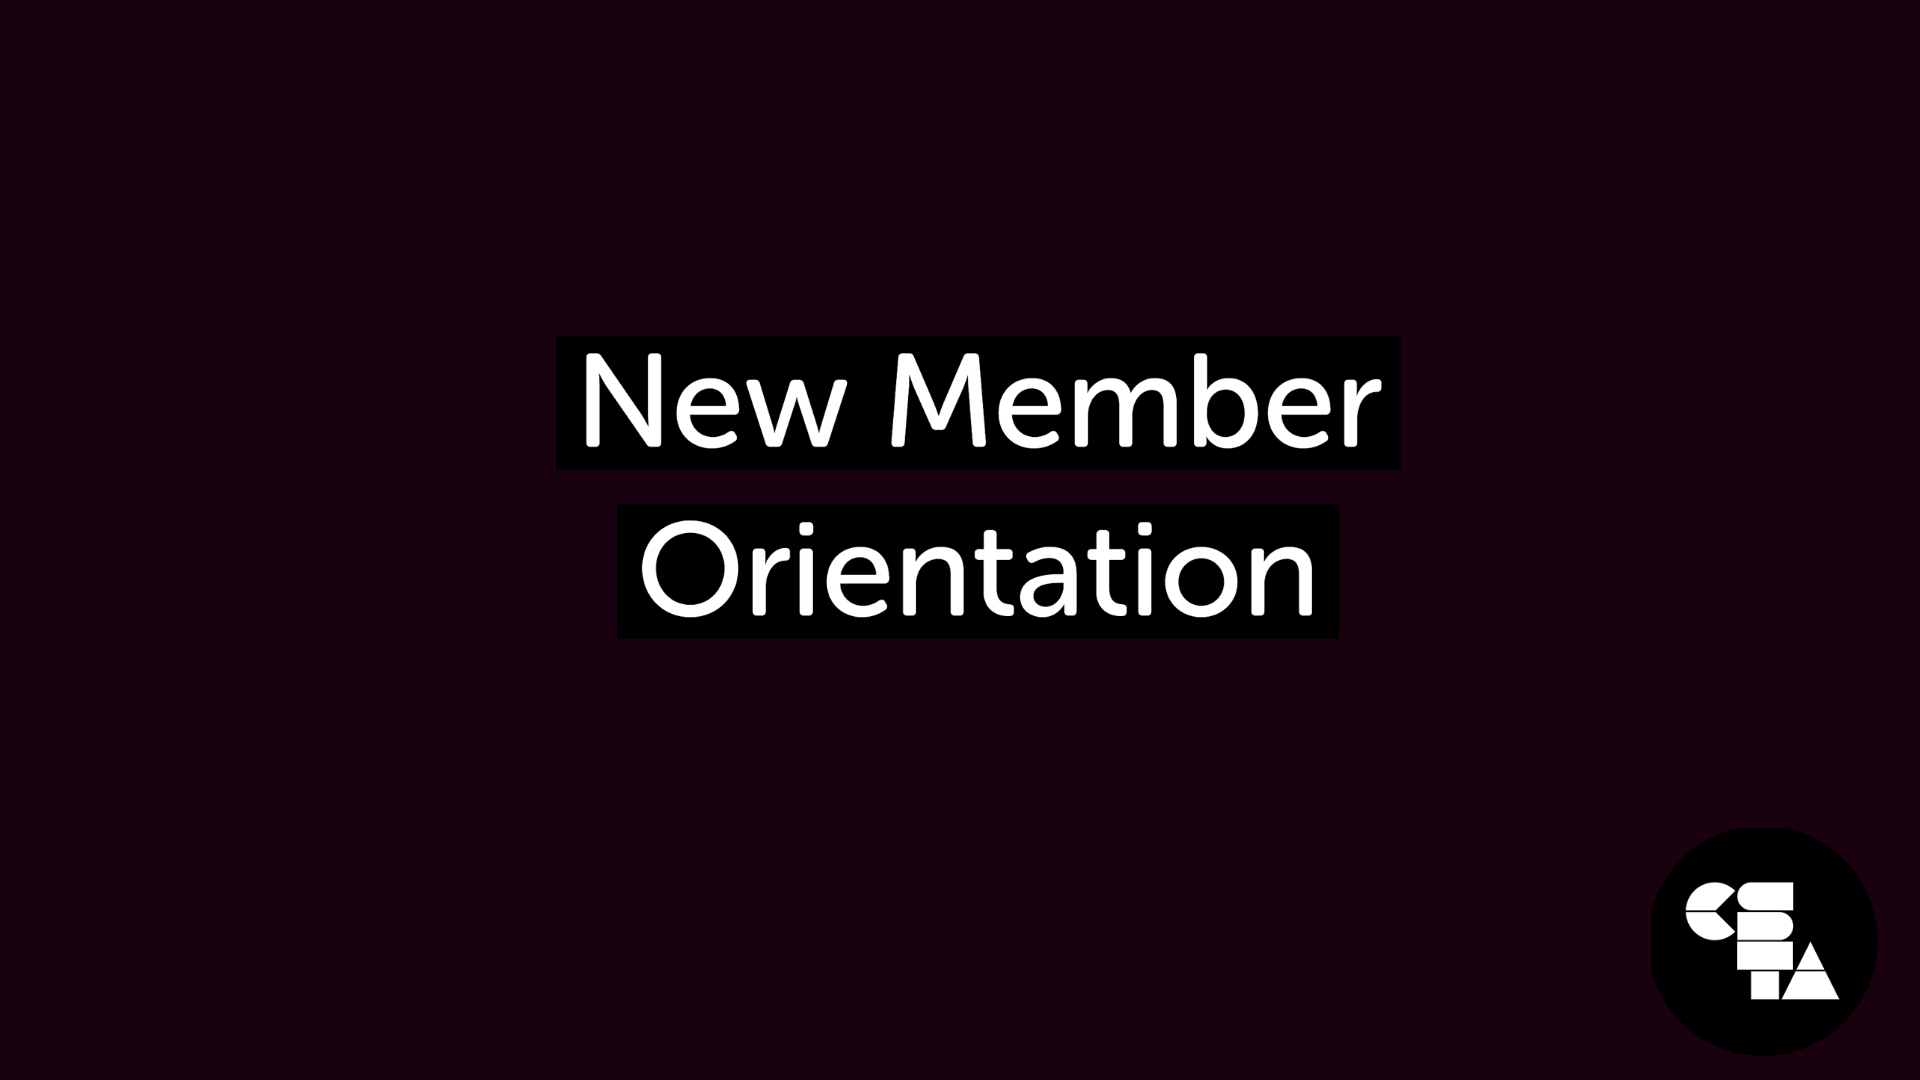 May New Member Orientation